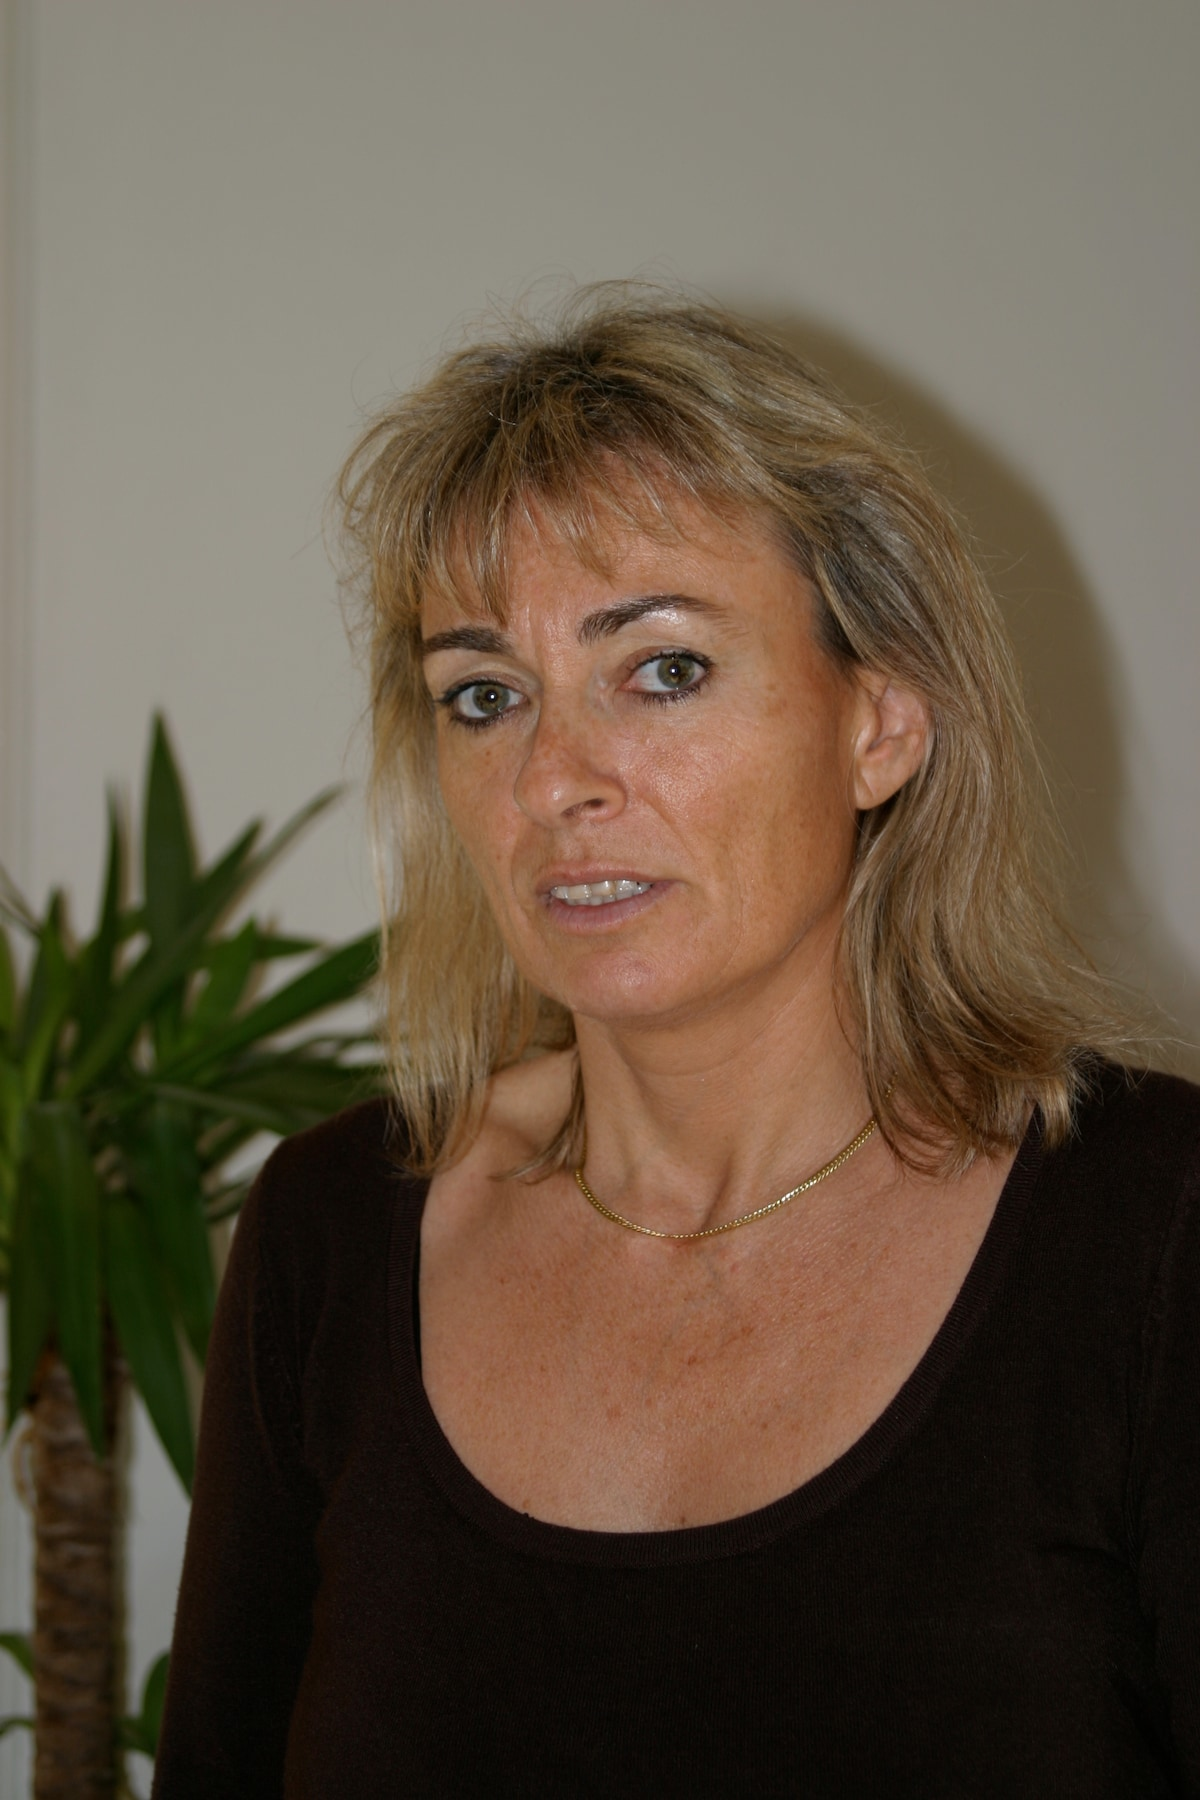 Pascale From Cannes, France